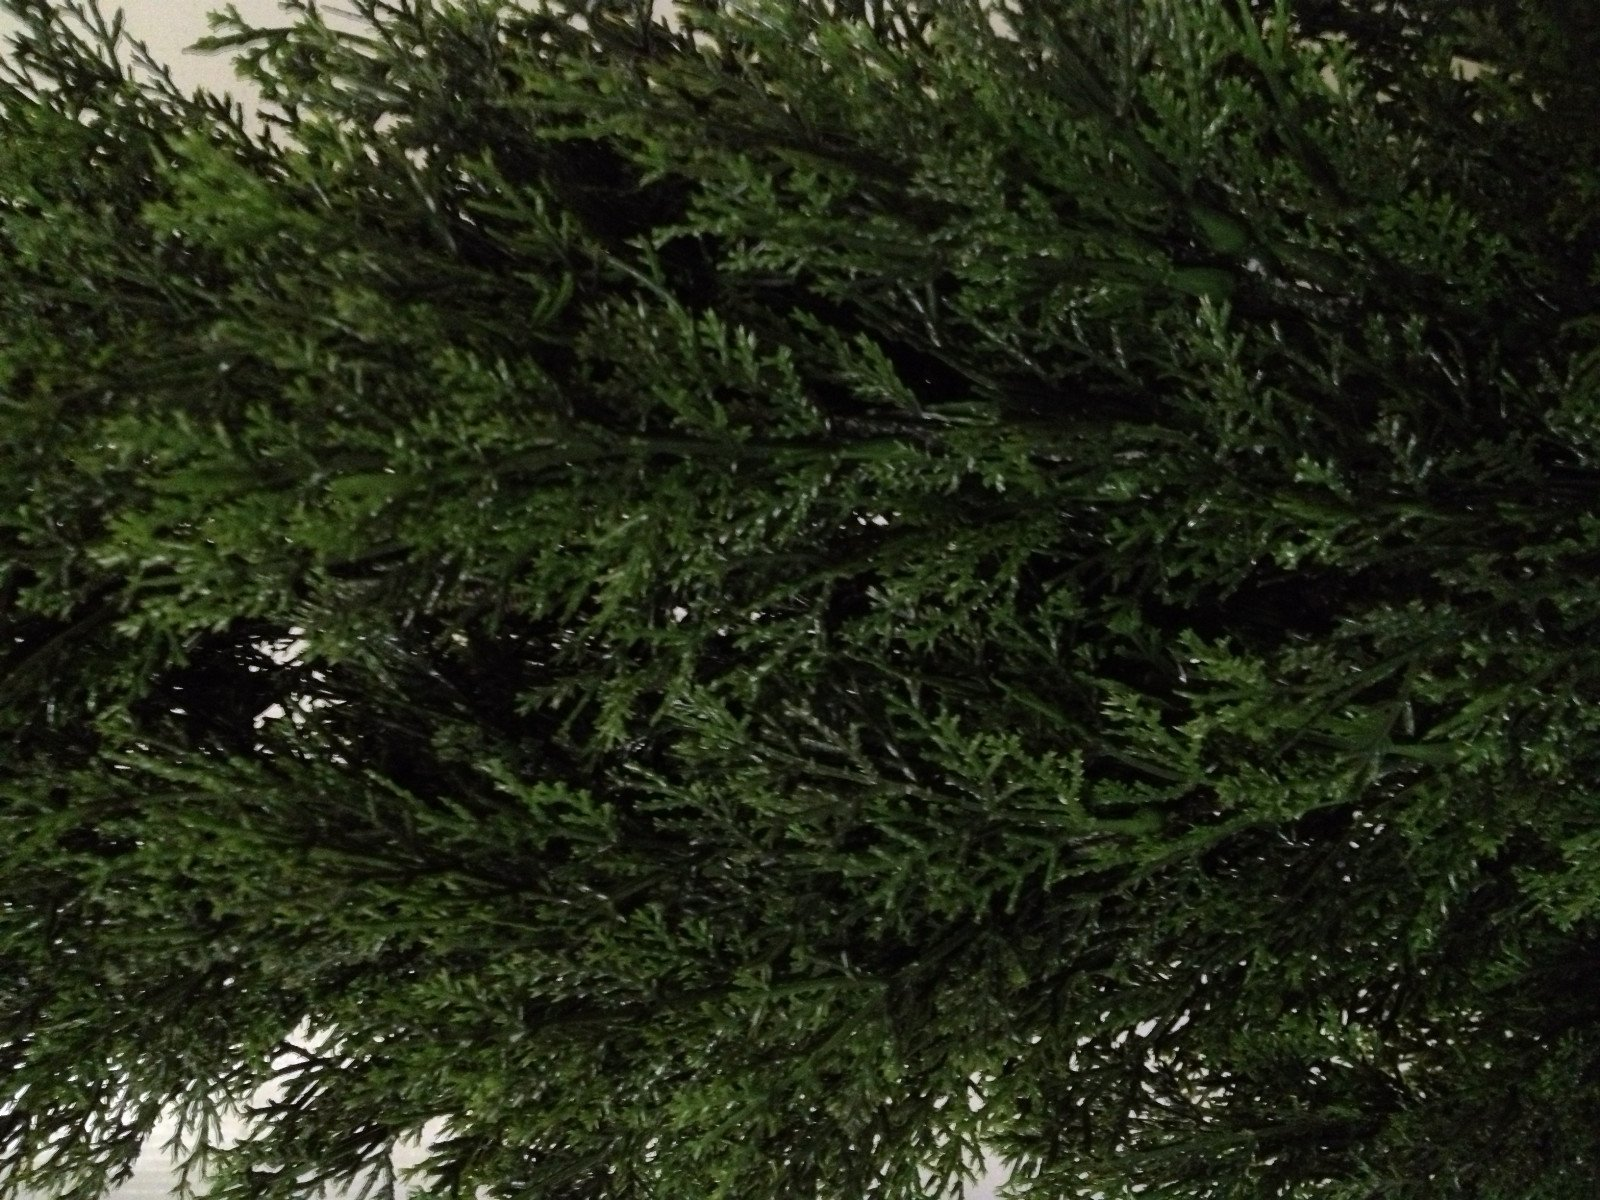 Two 4 Foot Artificial Topiary Cedar Trees Potted Indoor Outdoor Plants by Silk Tree Warehouse